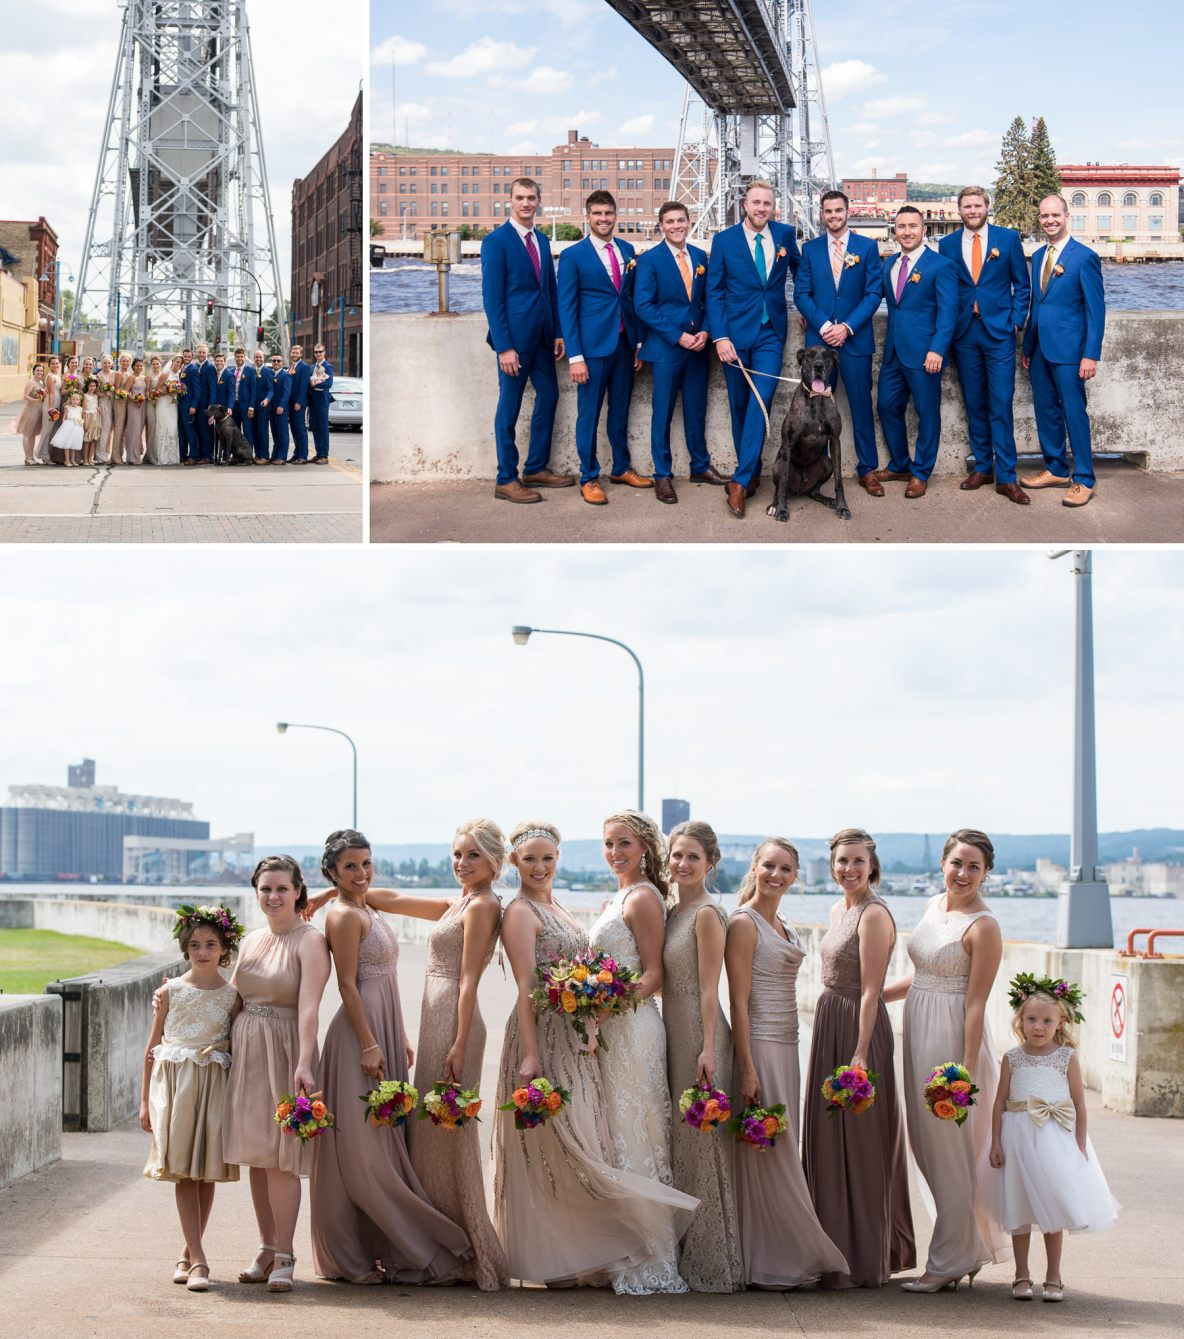 Wedding party photos on the streets of Duluth.